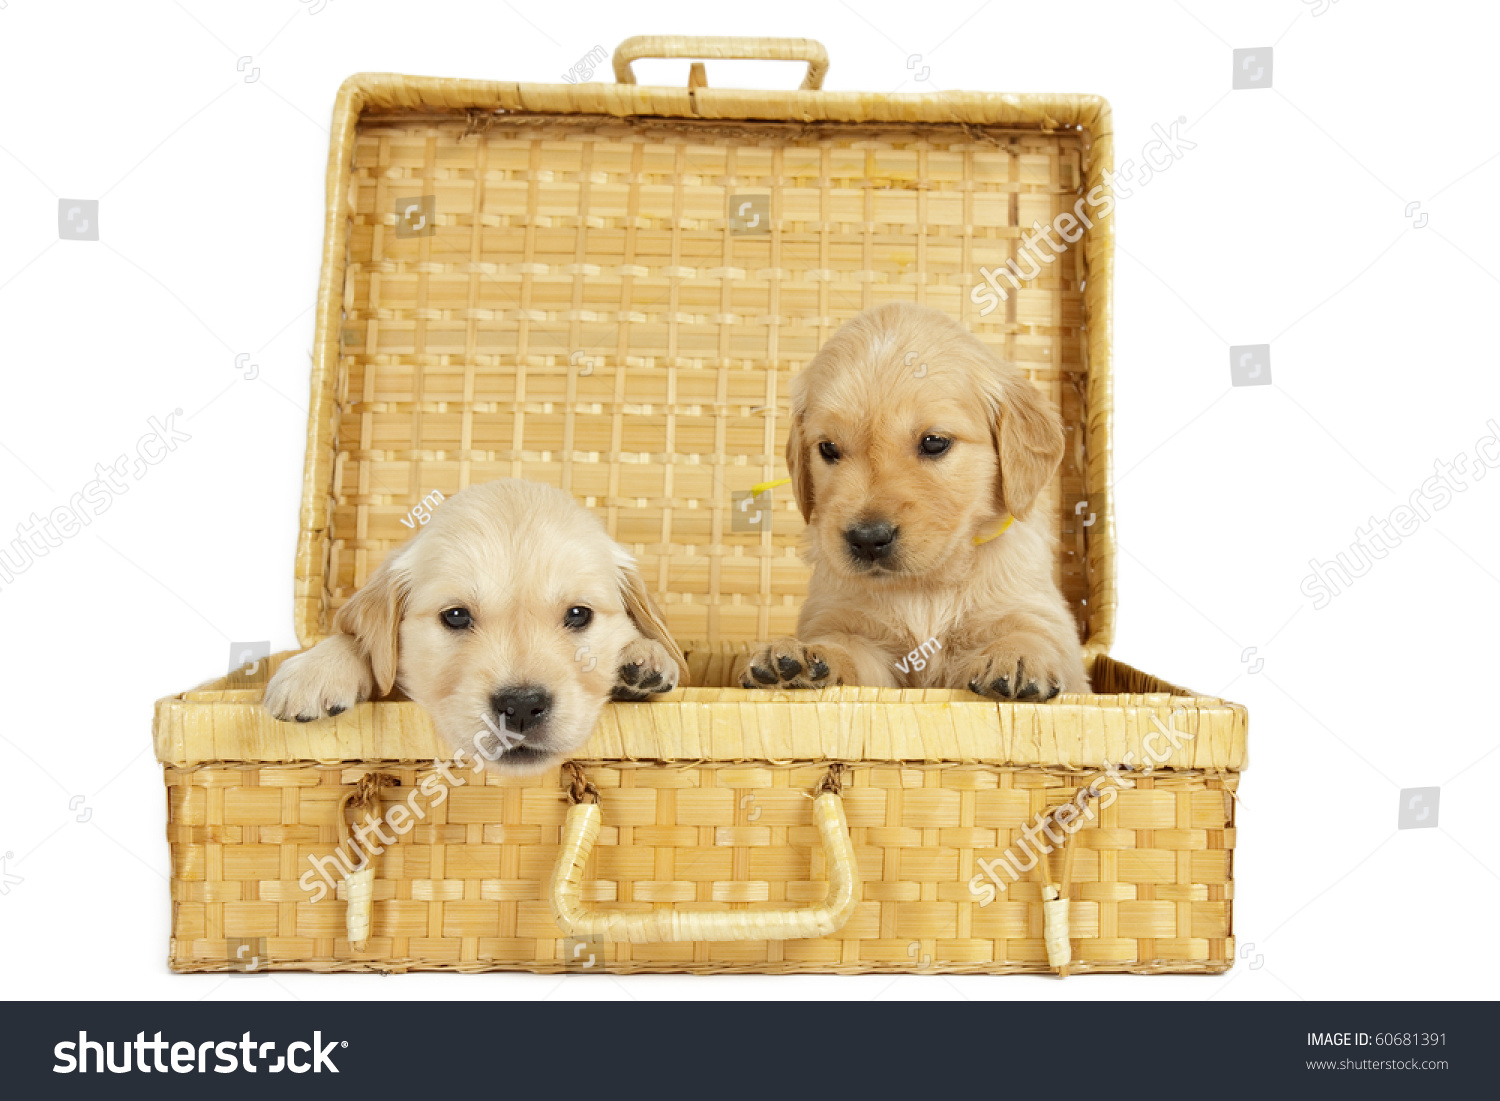 Golden retriever puppies in a wicker box